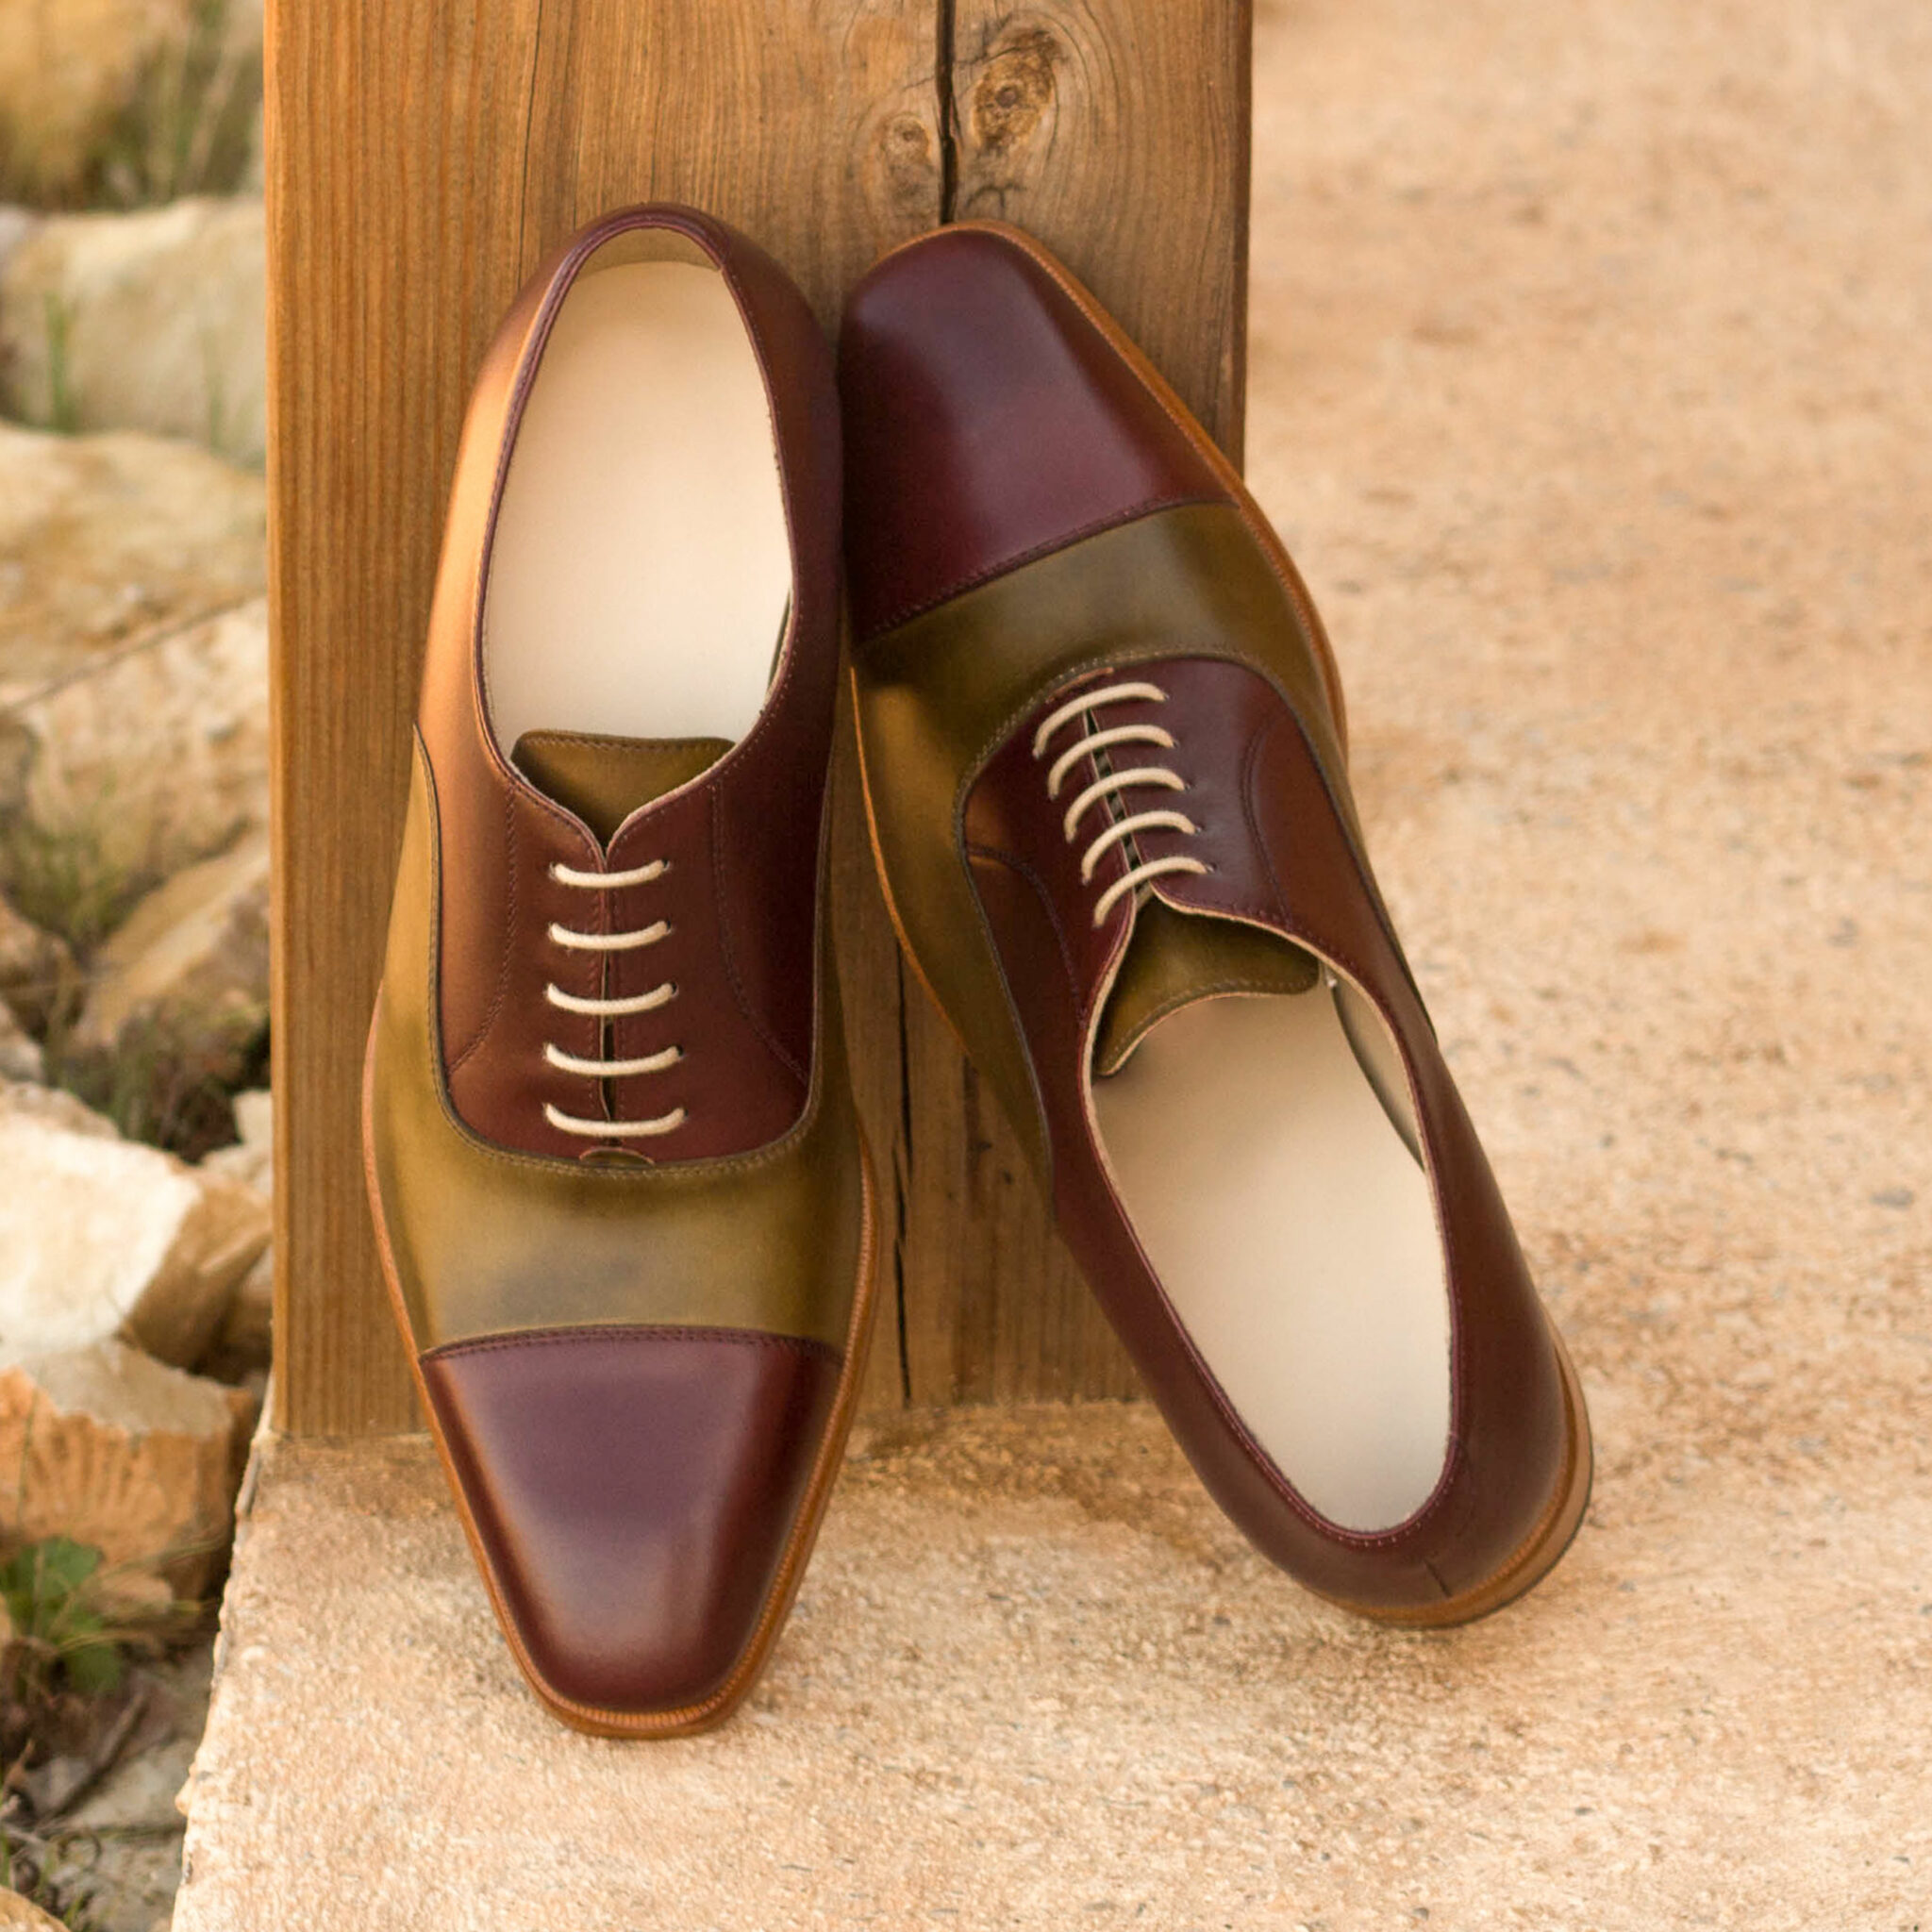 Oxford burgundy painted calf + olive painted calf : 240€